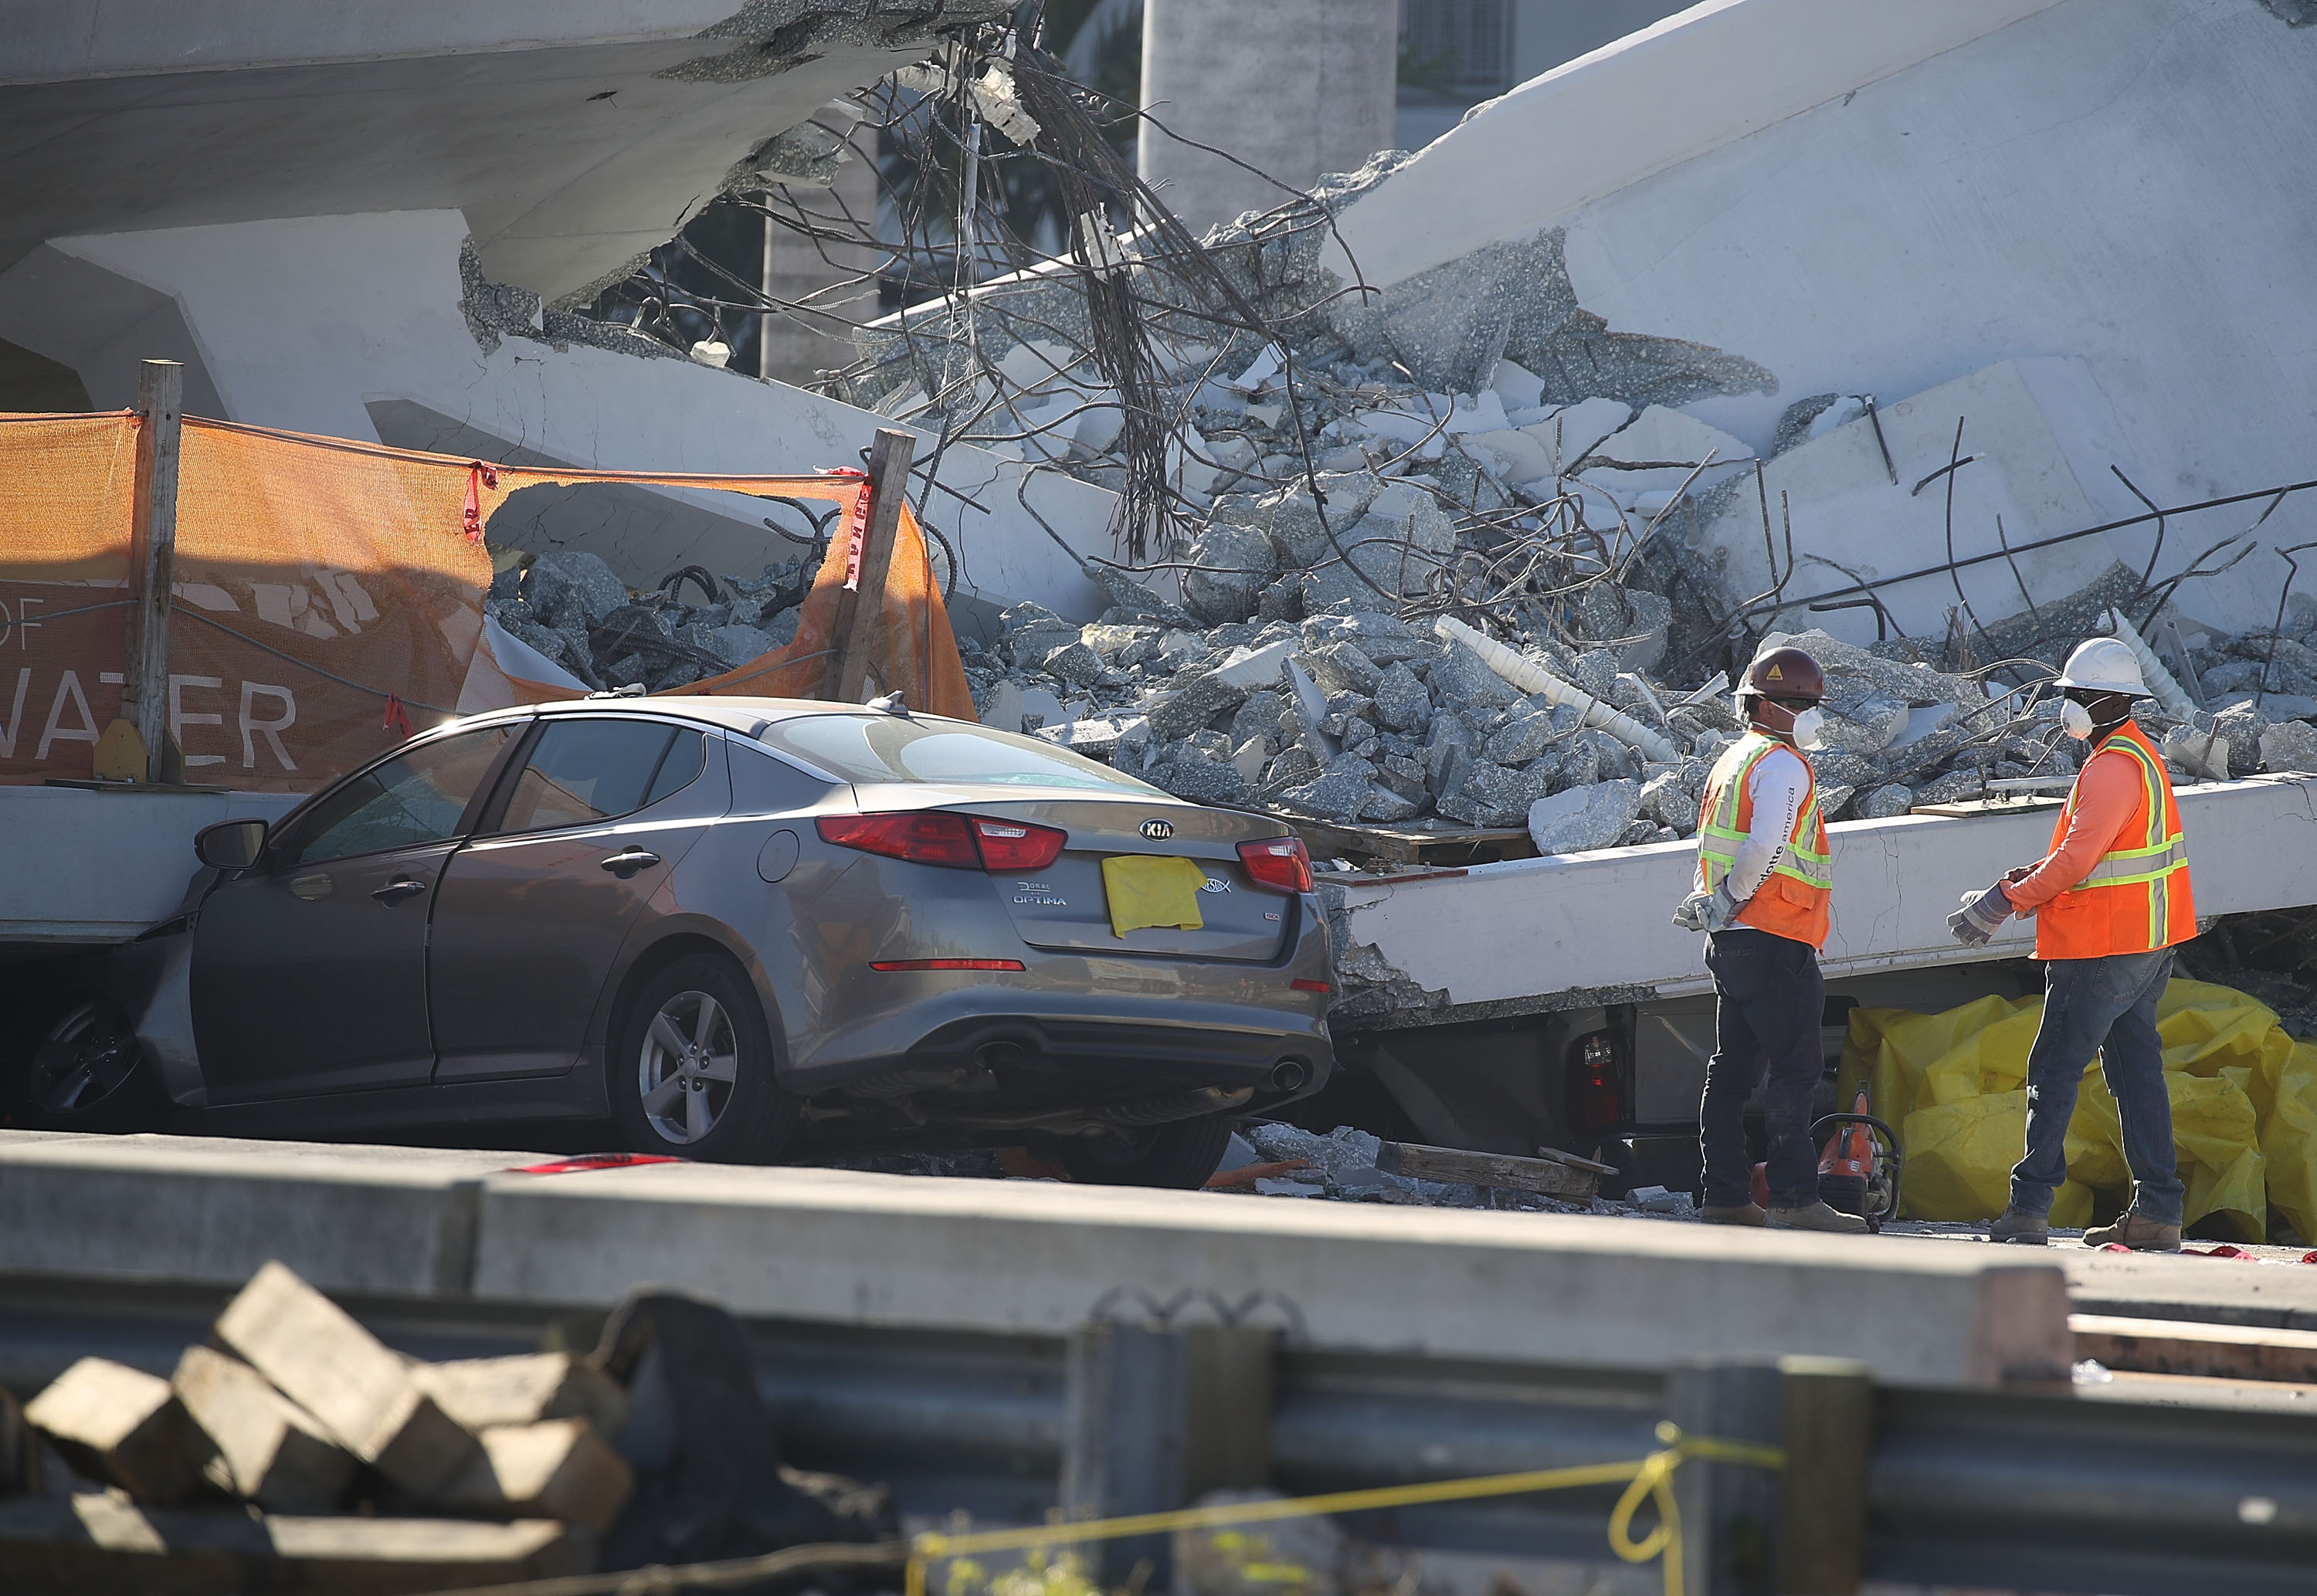 Workers, law enforcement and members of the National Transportation Safety Board investigate the scene where a pedestrian bridge collapsed a few days after it was built over southwest 8th street allowing people to bypass the busy street to reach Florida International University on March 16, 2018 in Miami, Florida.